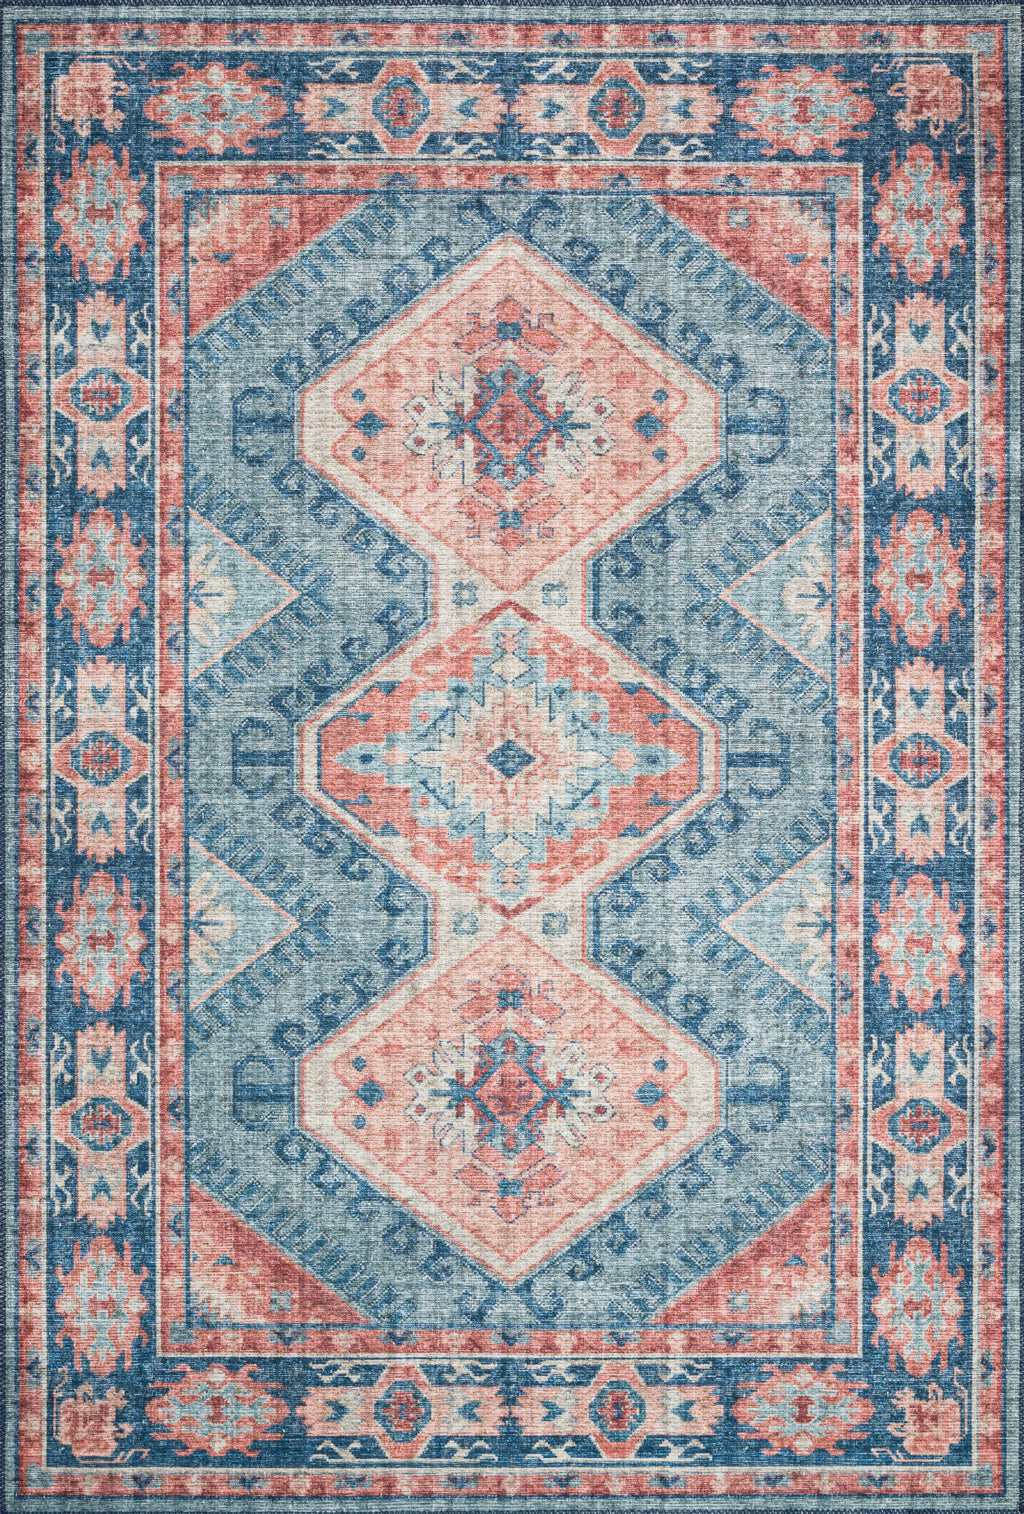 SKYE Collection Rug  in  TURQUOISE / TERRACOTTA Blue Accent Power-Loomed Polyester